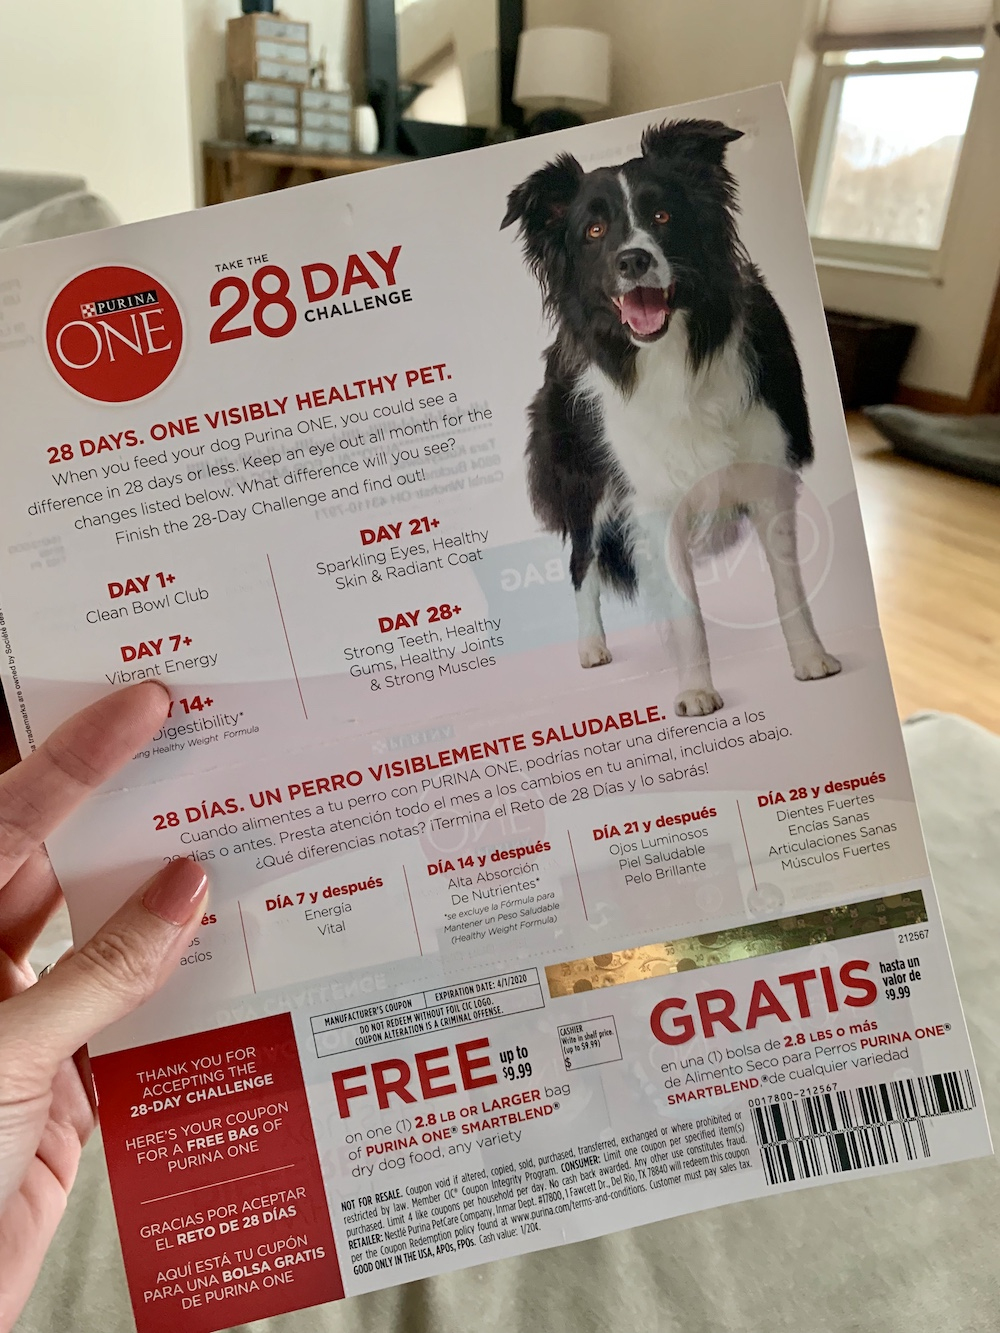 My Free Bag Of Purina One Dog Food Coupon Came Today! - Deal Seeking Mom - Free Printable Coupons For Purina One Dog Food